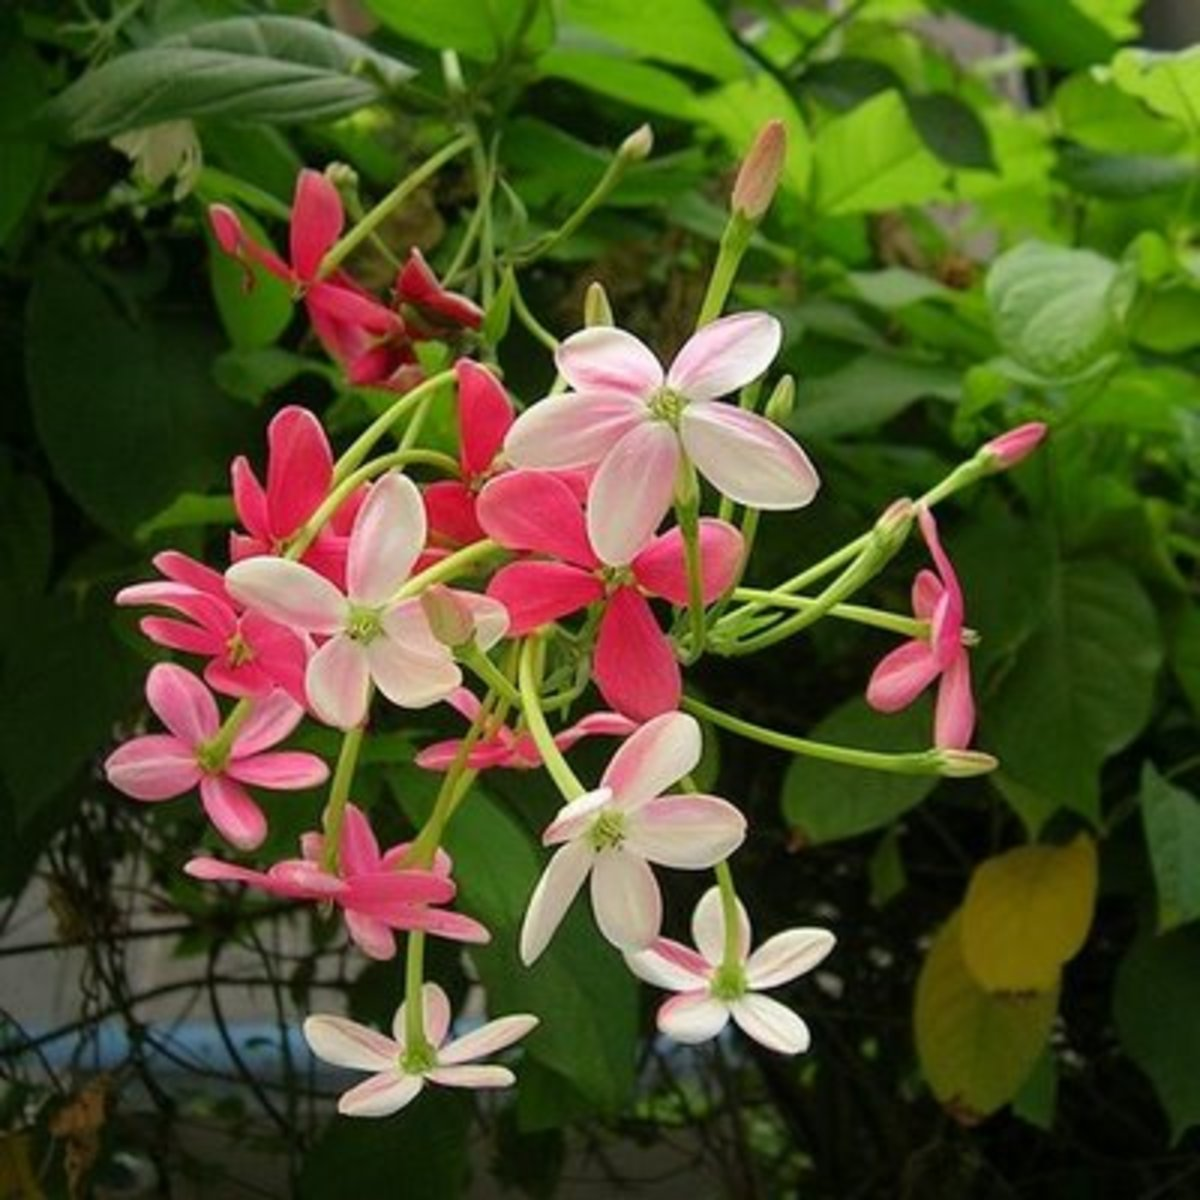 The Rangoon Creeper is truly an unusual and beautiful flowering vine.